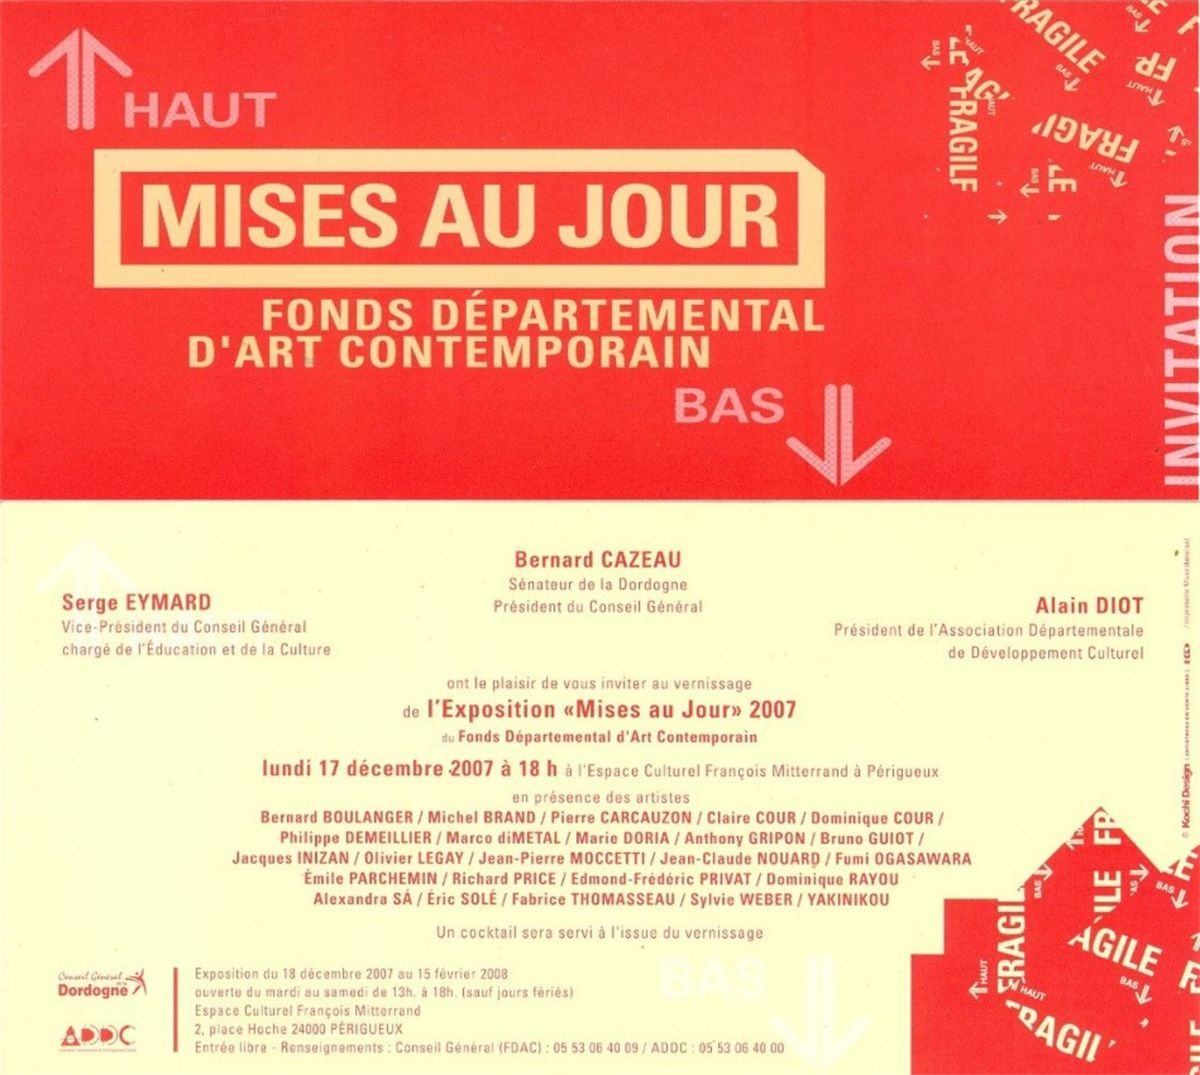 """SPECIFIC DAYS"" purchases Exhibition of FDAC Dordogne December 2007 to February 2008"